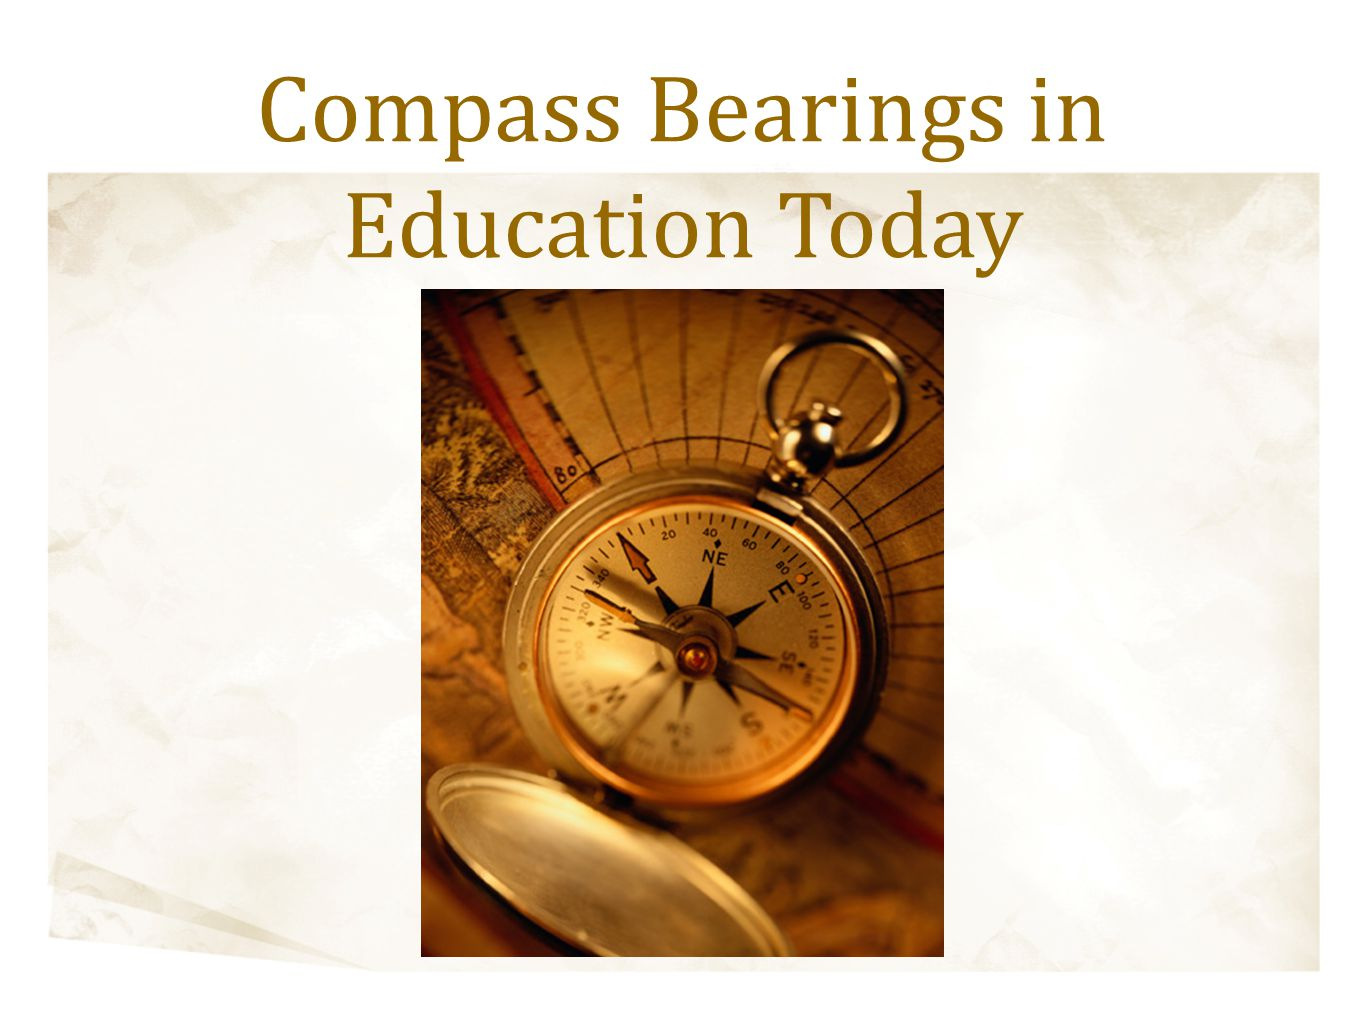 Compass Bearings in Education Today